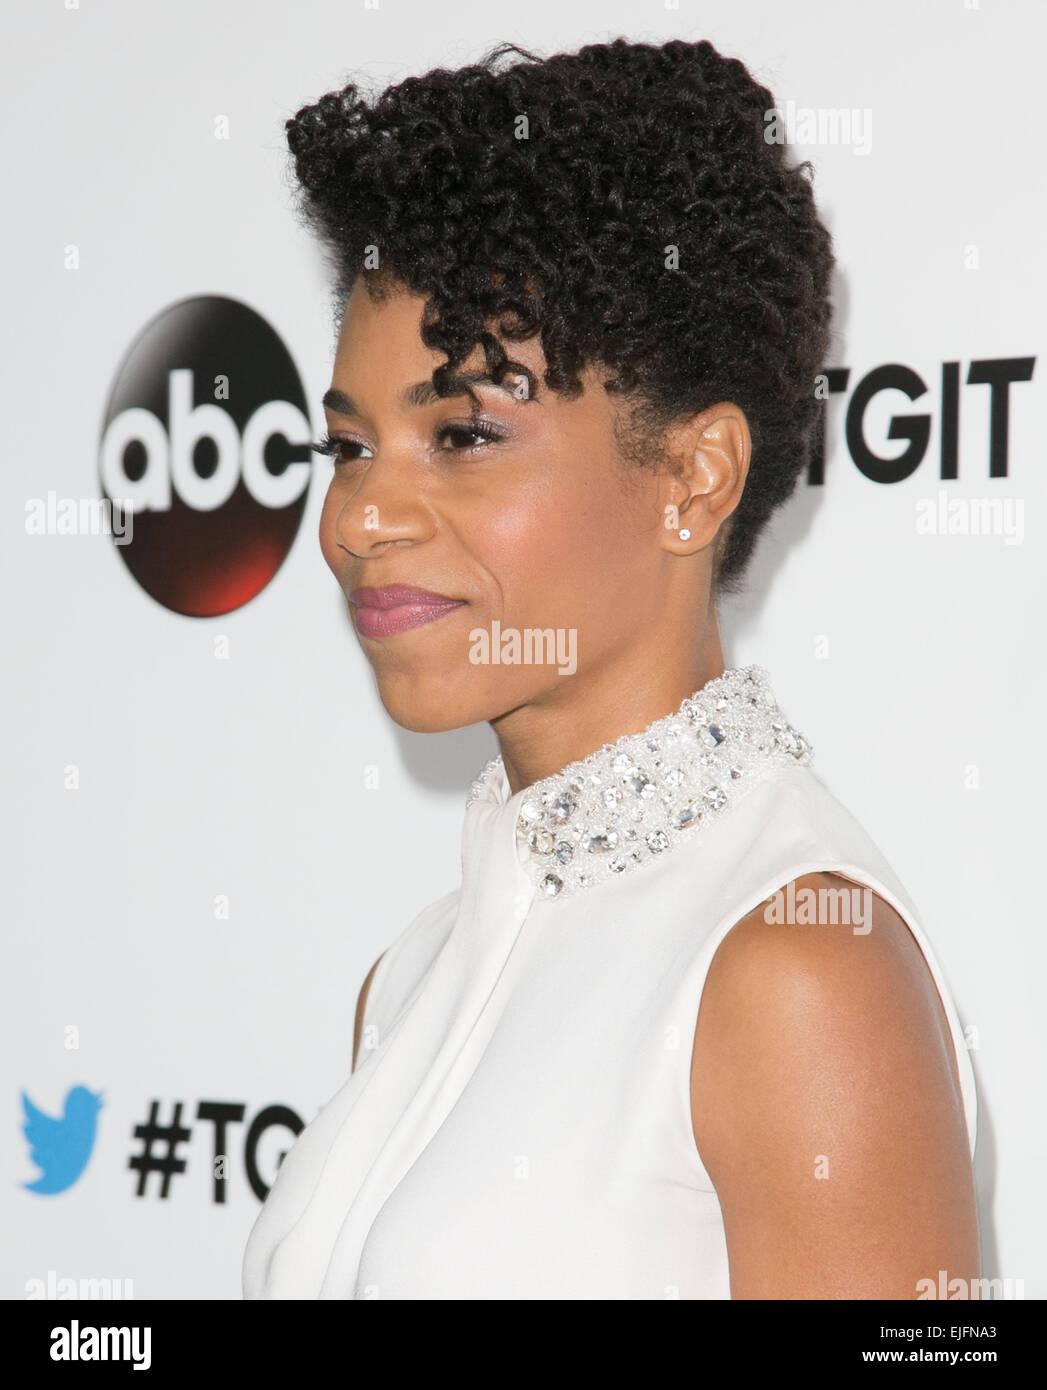 Celebrities attend TGIT Premiere Event for Grey\'s Anatomy, Scandal ...